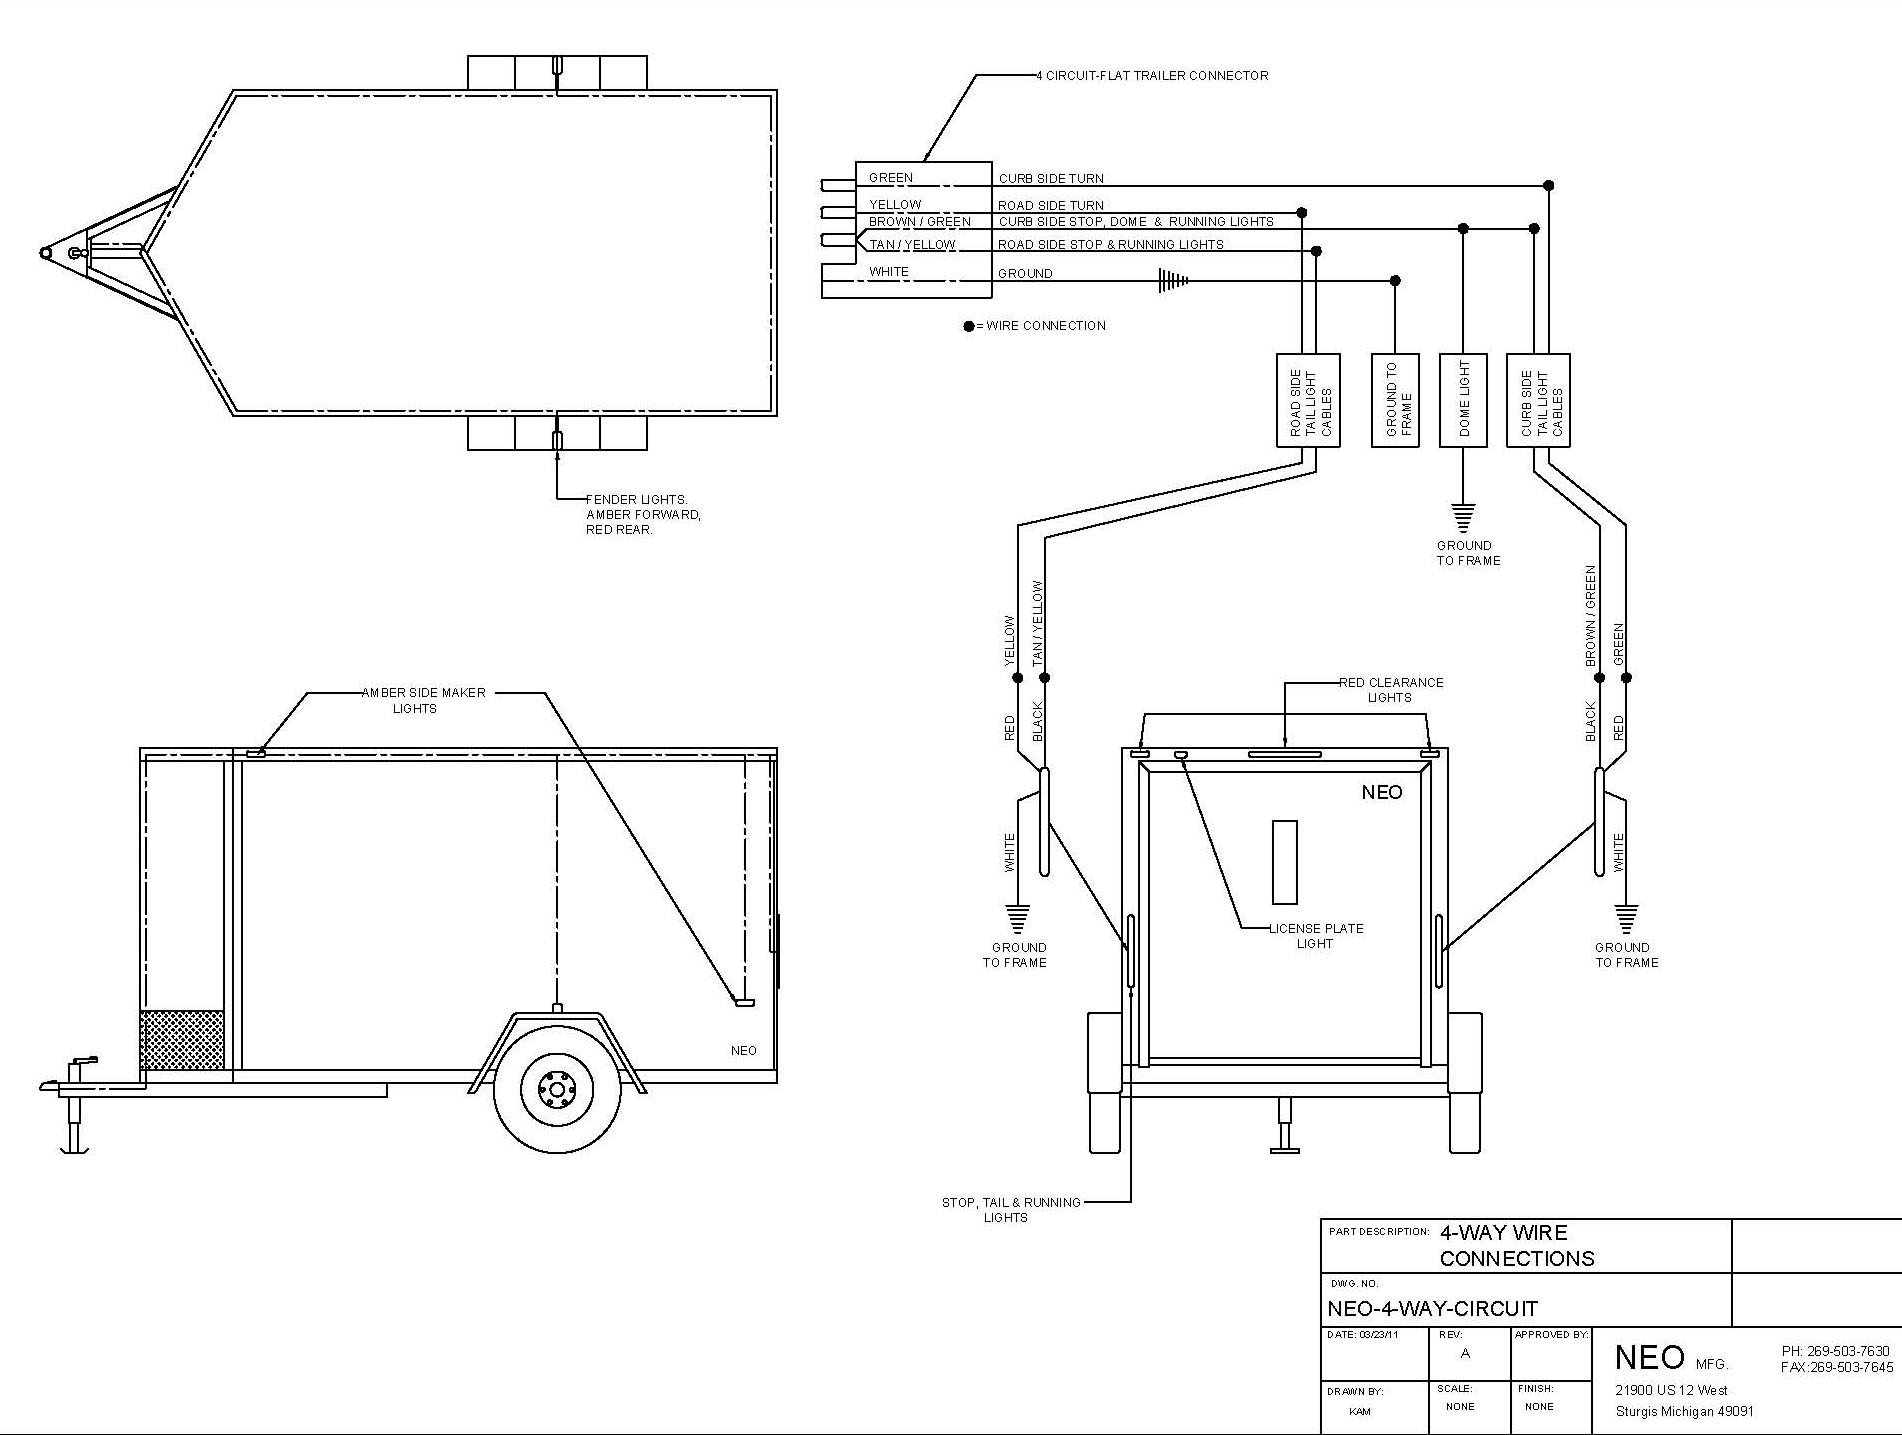 flat 4 wire diagram wiring diagram Trailer Connector Schematic neo trailers manualflat 4 wire diagram 18